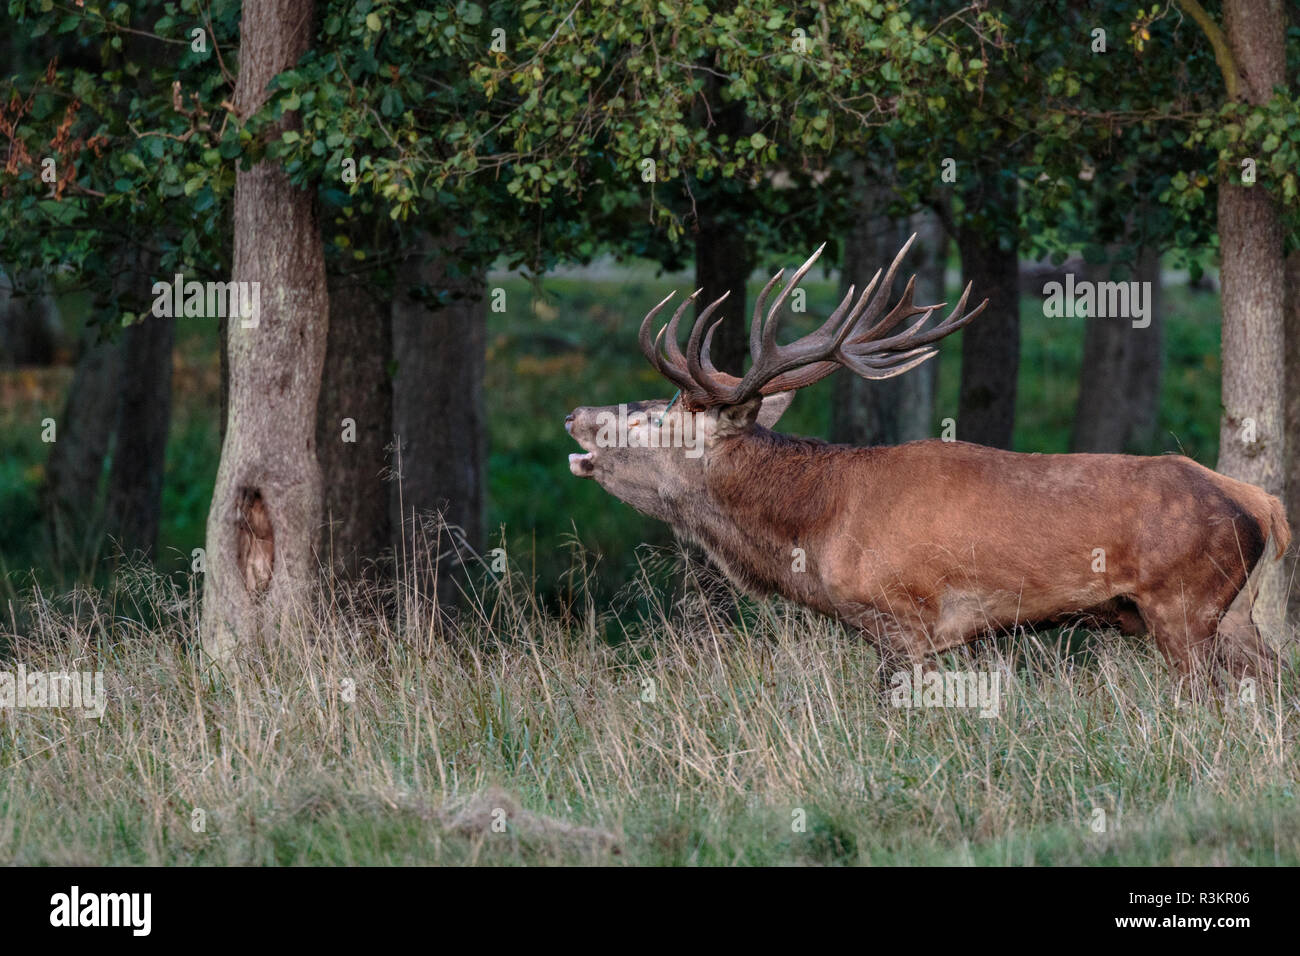 Stag during rutseason standing among trees bellowing, Jaegerborg dyrehaven, Denmark - Stock Image